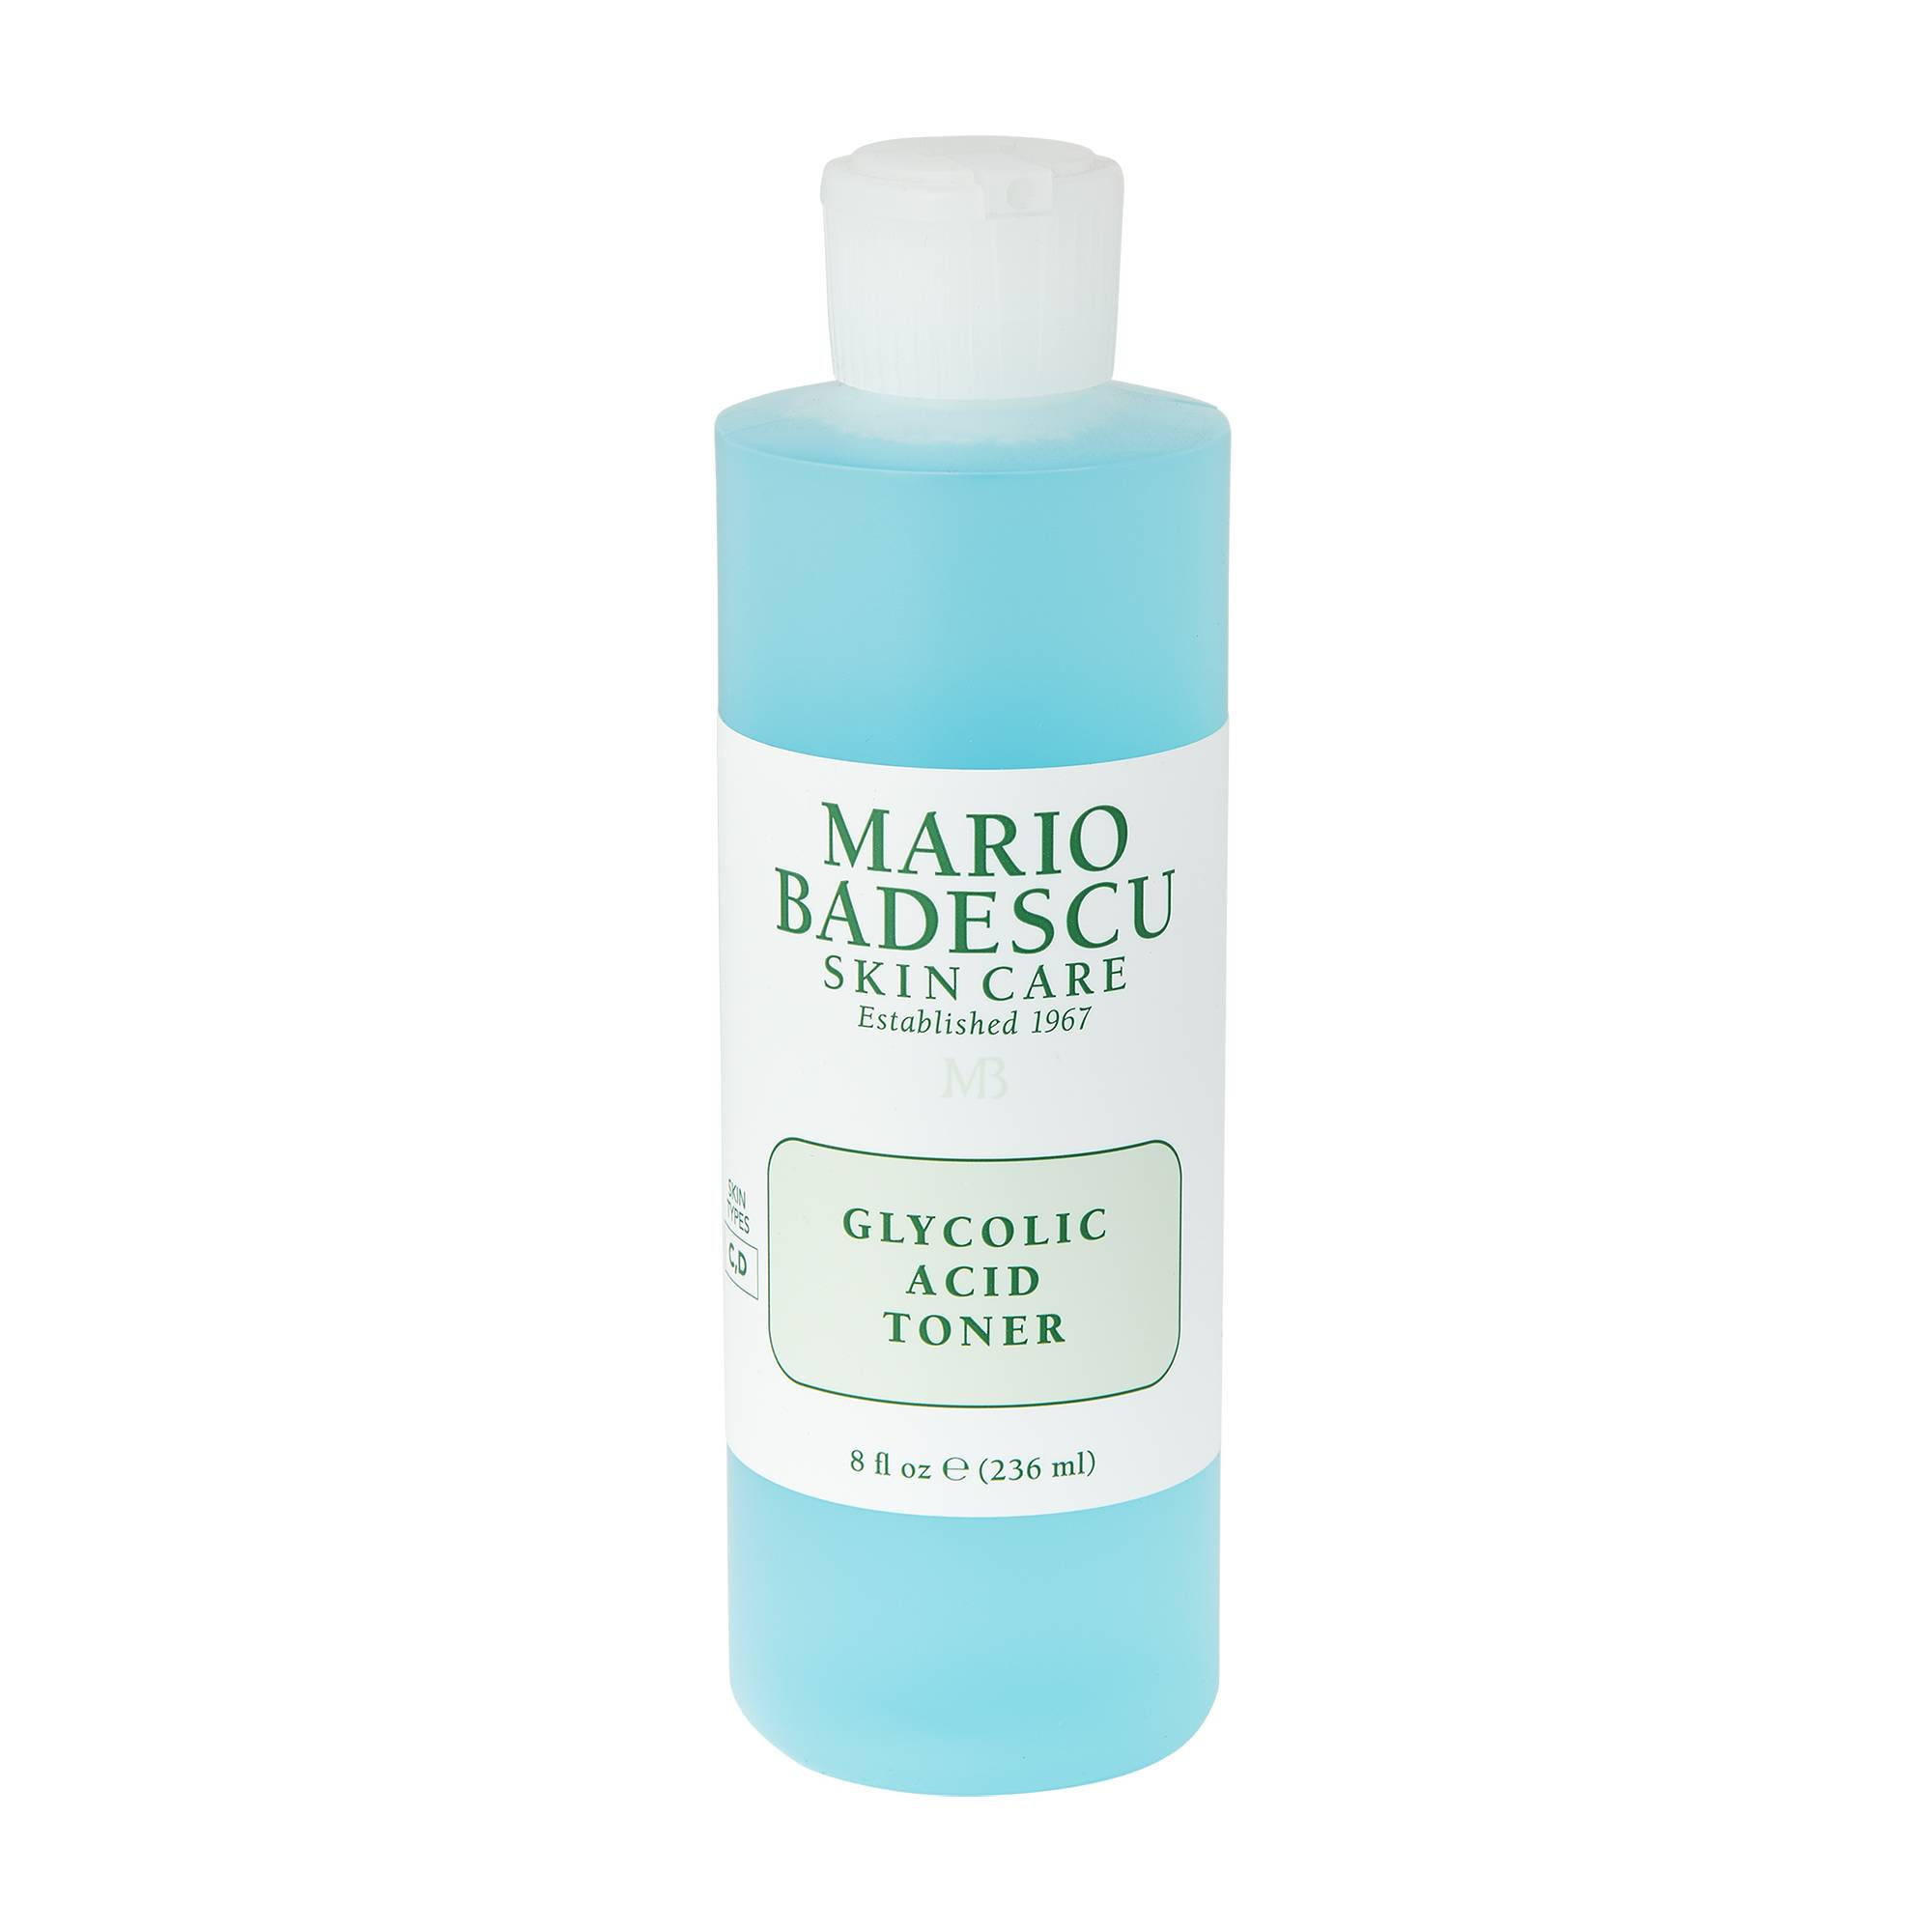 Mario Badescu Lotion tonique lacide glycolique Glycolic Acid Toner 236ml